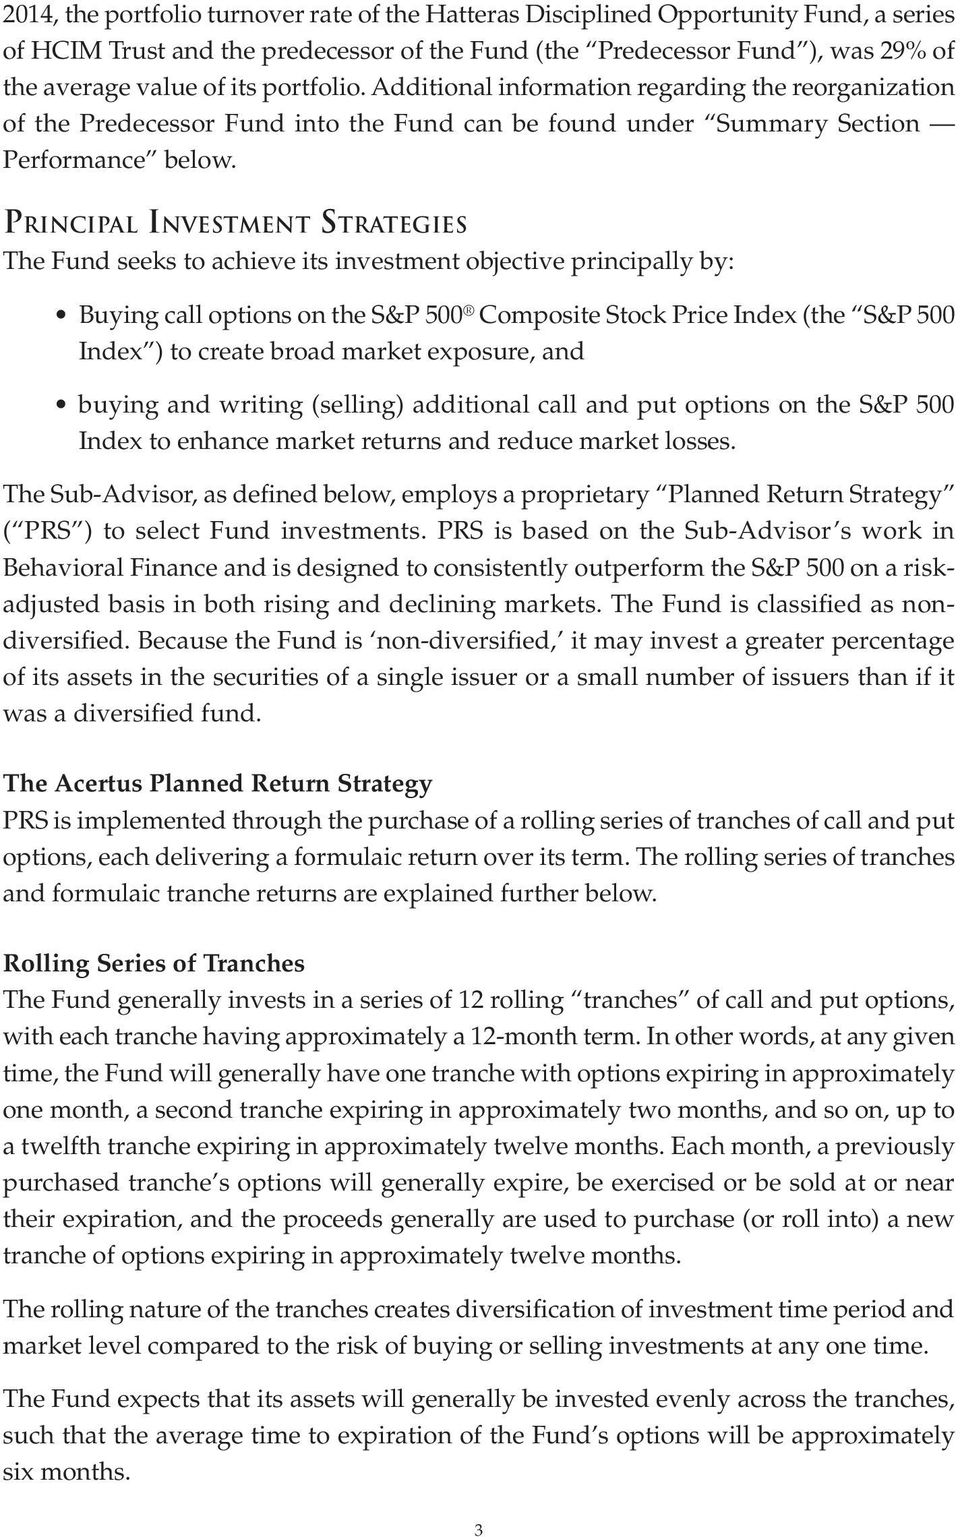 PRINCIPAL INVESTMENT STRATEGIES The Fund seeks to achieve its investment objective principally by: Buying call options on the S&P 500 Composite Stock Price Index (the S&P 500 Index ) to create broad